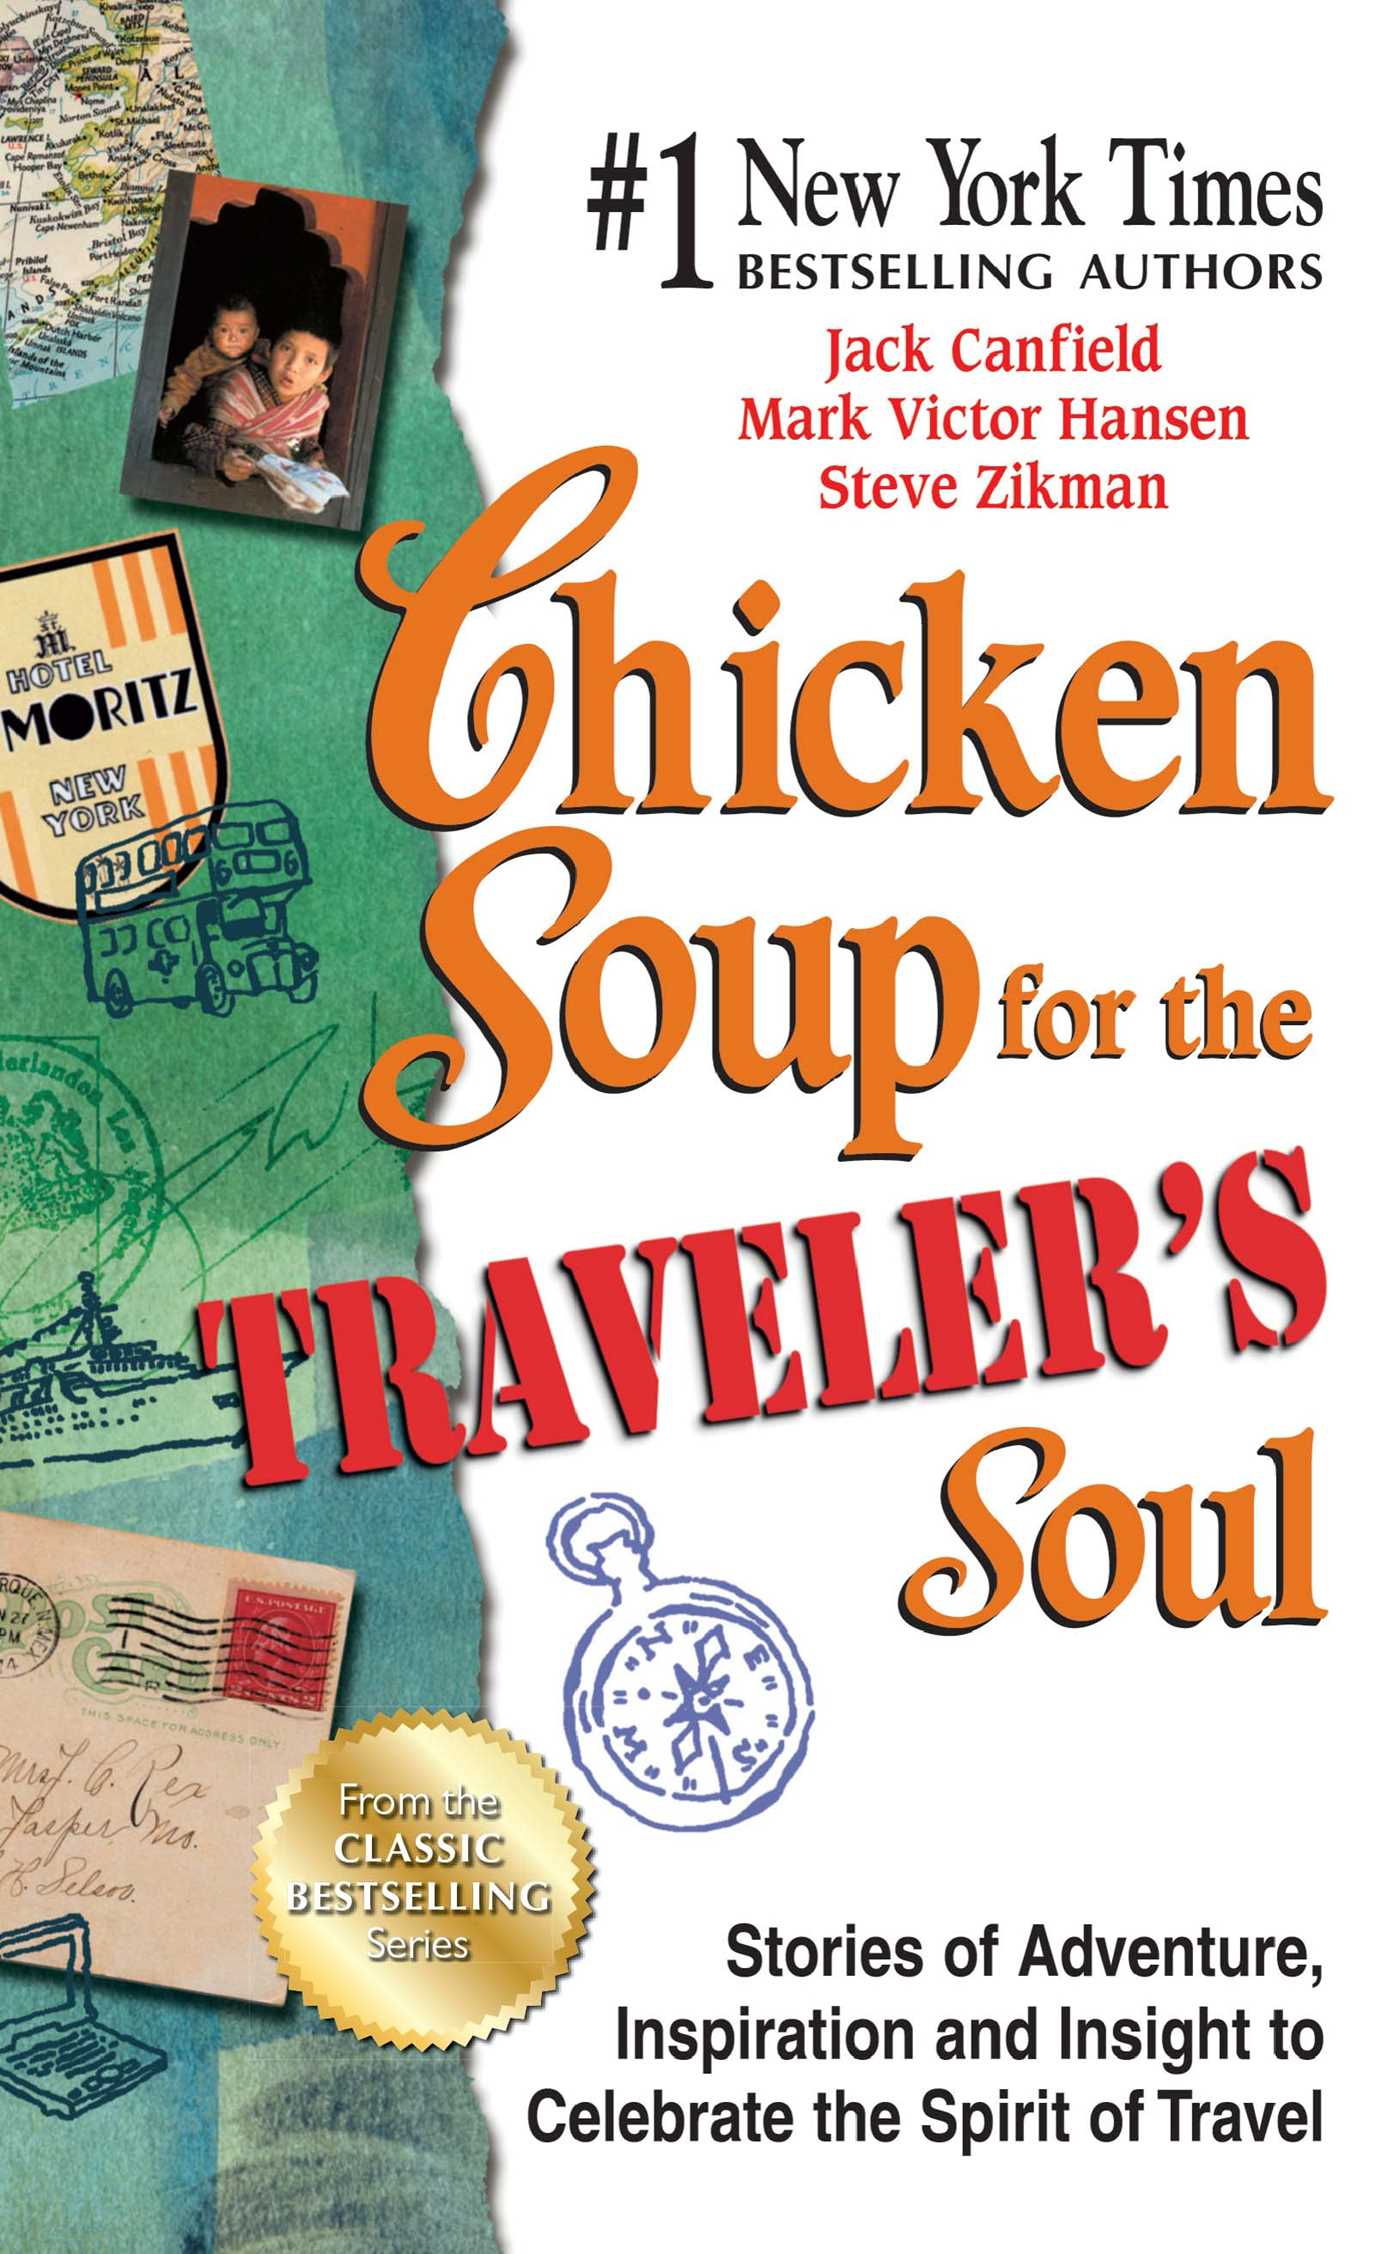 Chicken-soup-for-the-travelers-soul-9781623611057_hr